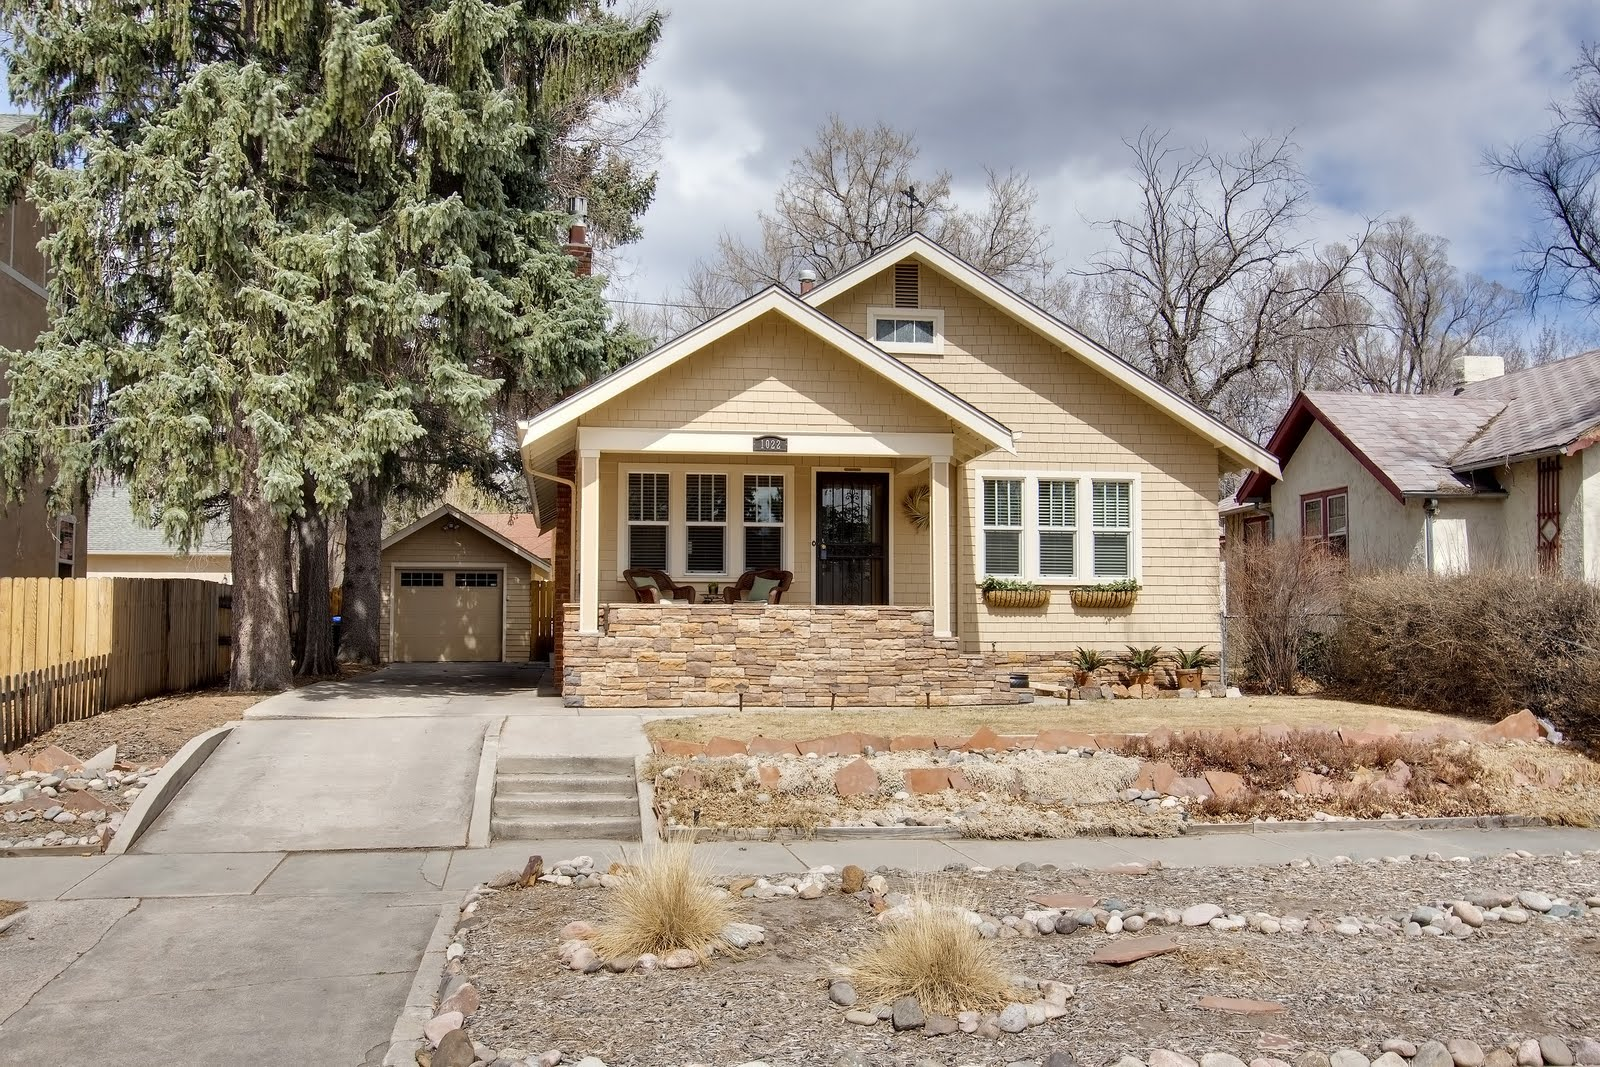 Charming Home For Sale In Colorado Springs. Filing Chapter 13 After Chapter 7. Treatment Eating Disorders Uaz Patriot Price. Loyalty Program Example Fixed Income Examples. Commercial Property Management Courses. Australia Ranking University. Wichita Falls Funeral Homes Hvac Trade Shows. Massage Therapy In Hospitals. Home Cleaning Services Phoenix